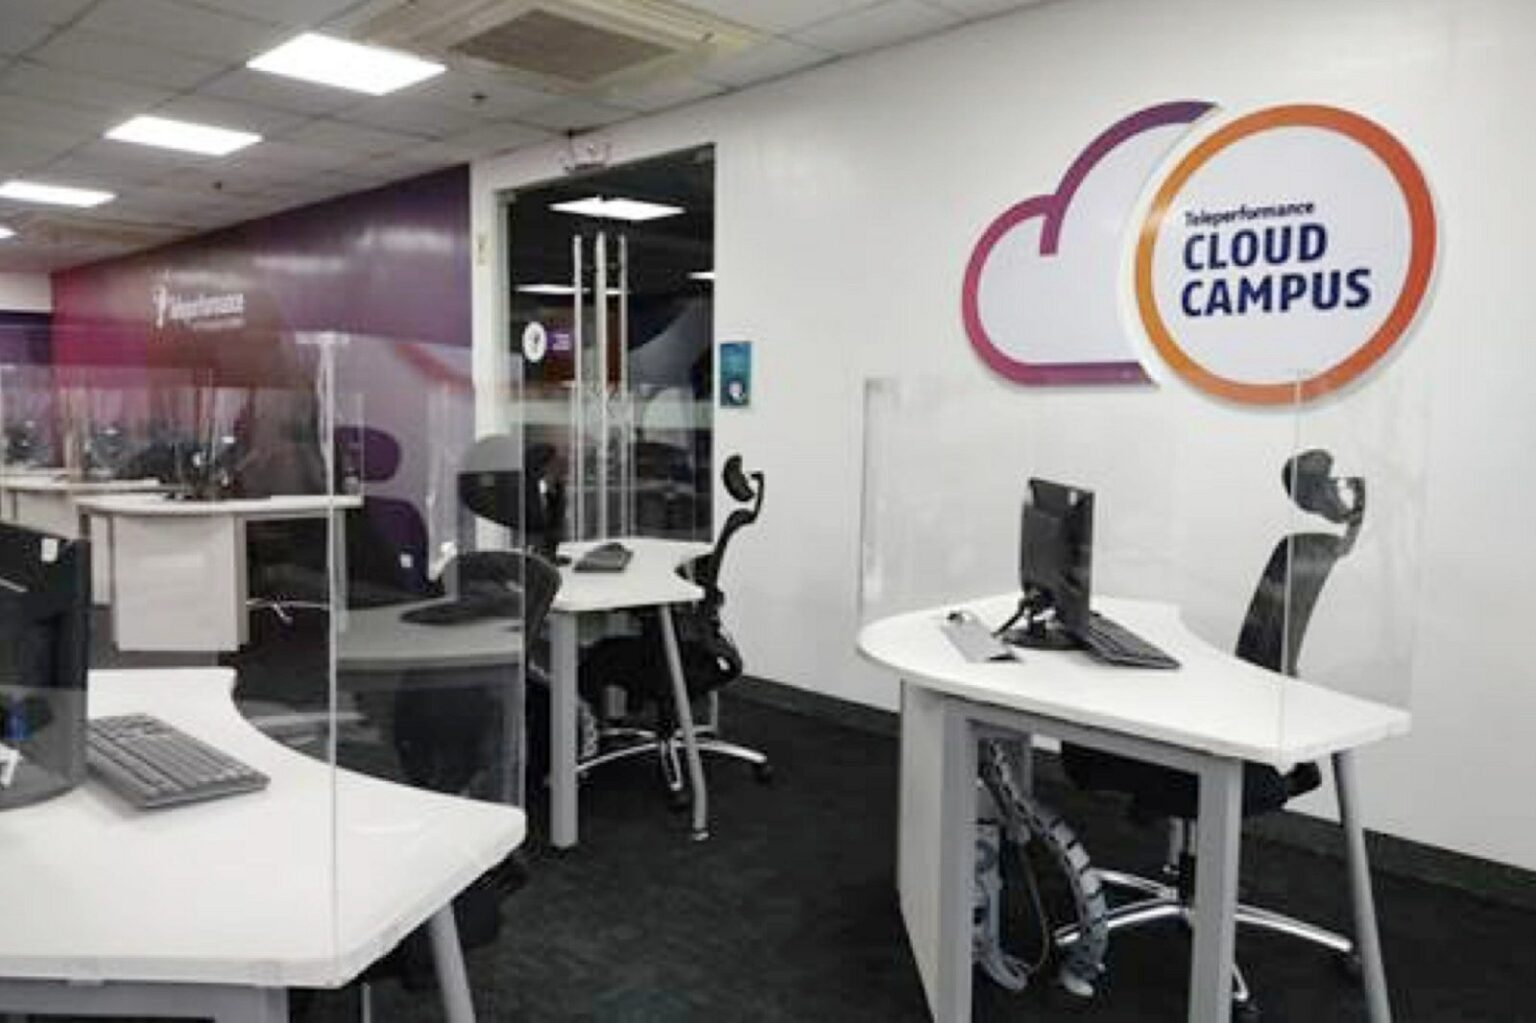 Teleperformance's 'Cloud Campus' redefines work-at-home environment